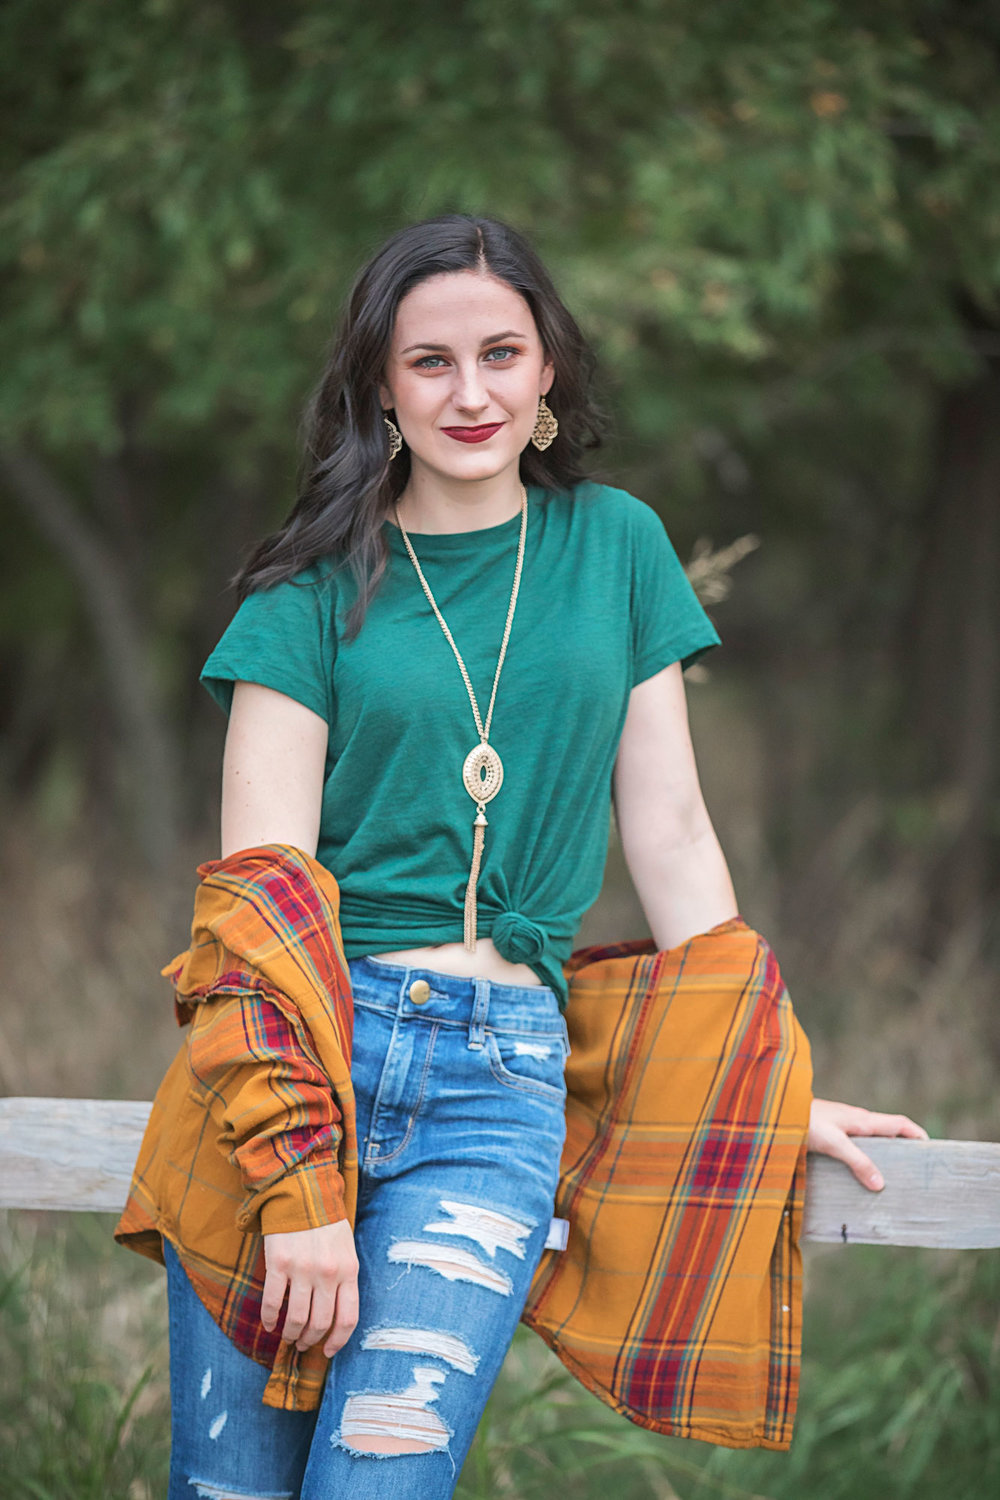 Image of senior girl with long brown hair, wearing green t-shirt with mustard yellow flannel, leaning against wooden fence at a park in Oklahoma City by Amanda Lynn Photography.